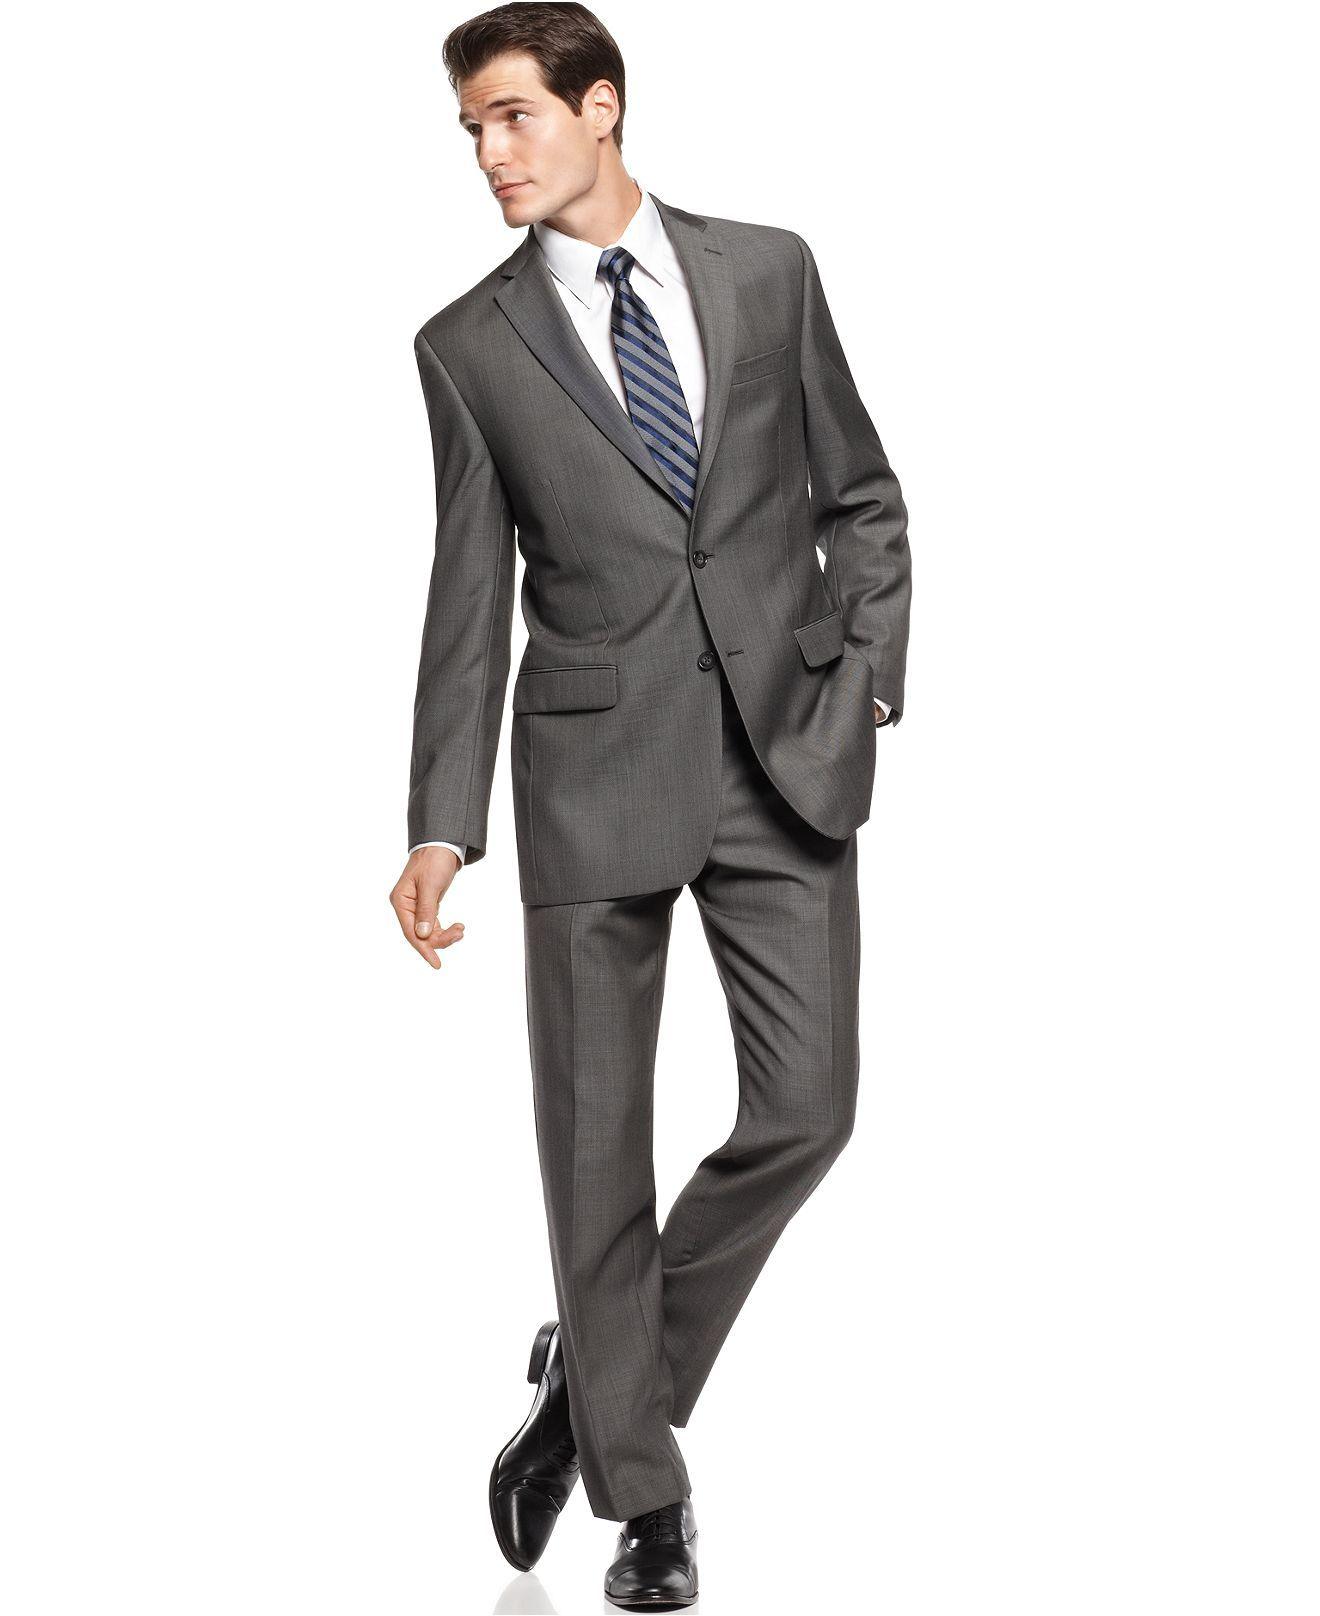 Calvin Klein Suit Separates, Charcoal Pindot Slim Fit ...